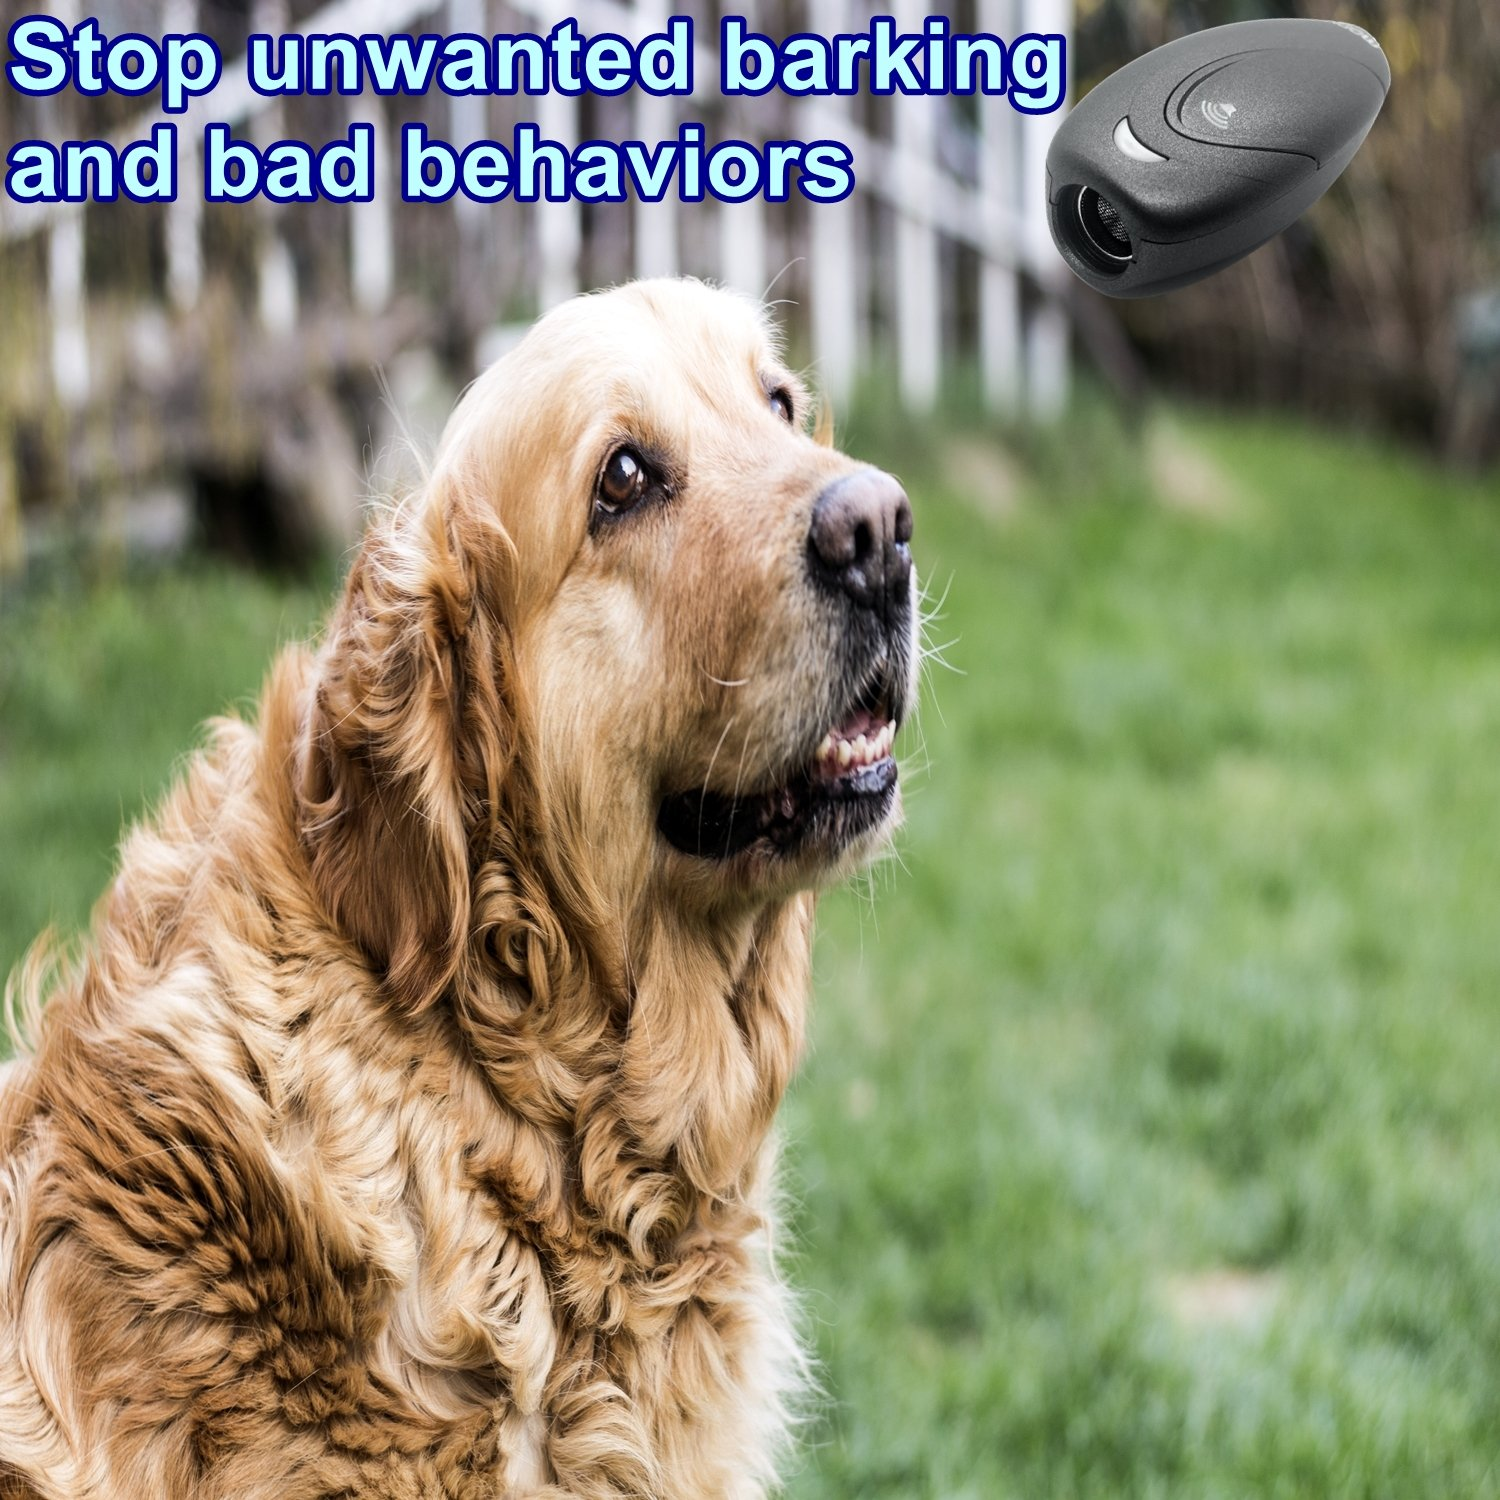 BossBee Ultrasonic barking control, Dog bark control, Bark trainer, Dog control-anti barking devices, Handheld dog bark deterrent with Wrist Strap,No bark devices,Barking dog deterrent,Bark controller